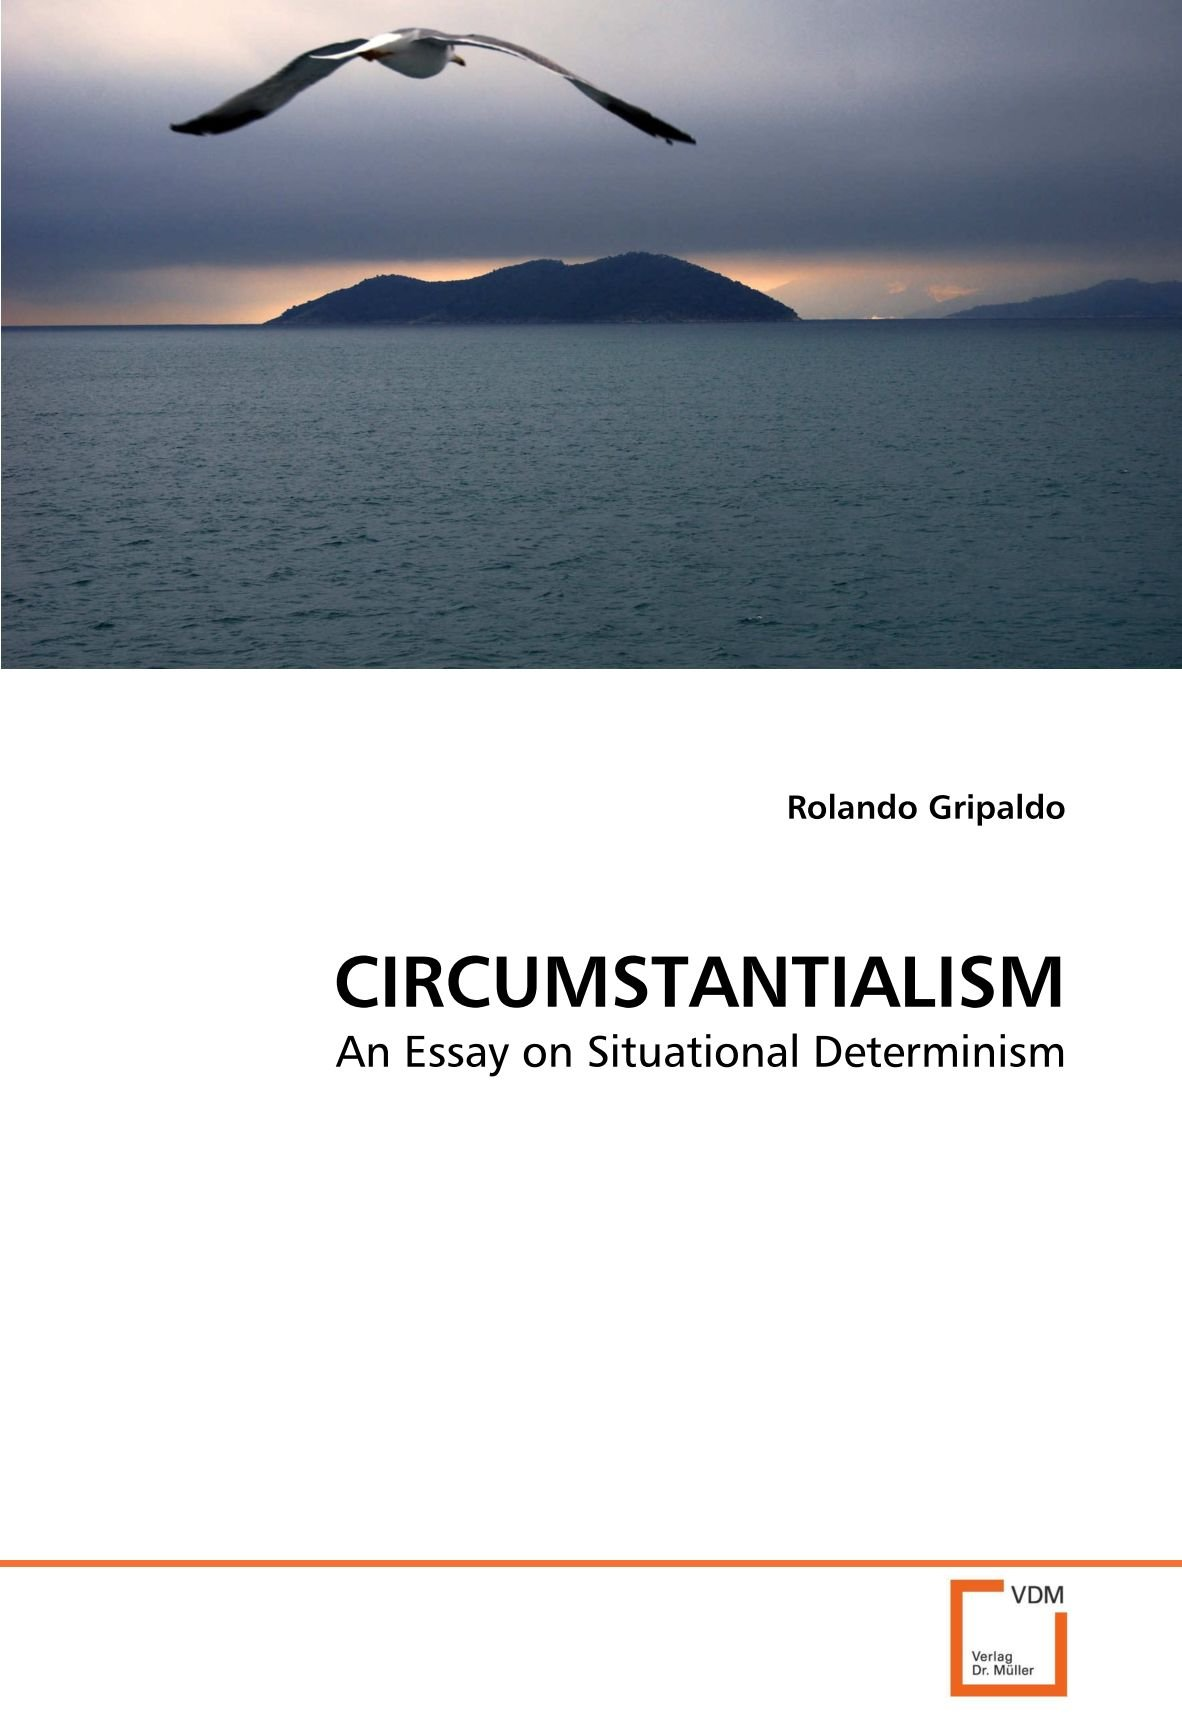 circumstantialism an essay on situational determinism rolando circumstantialism an essay on situational determinism rolando gripaldo 9783639328868 com books